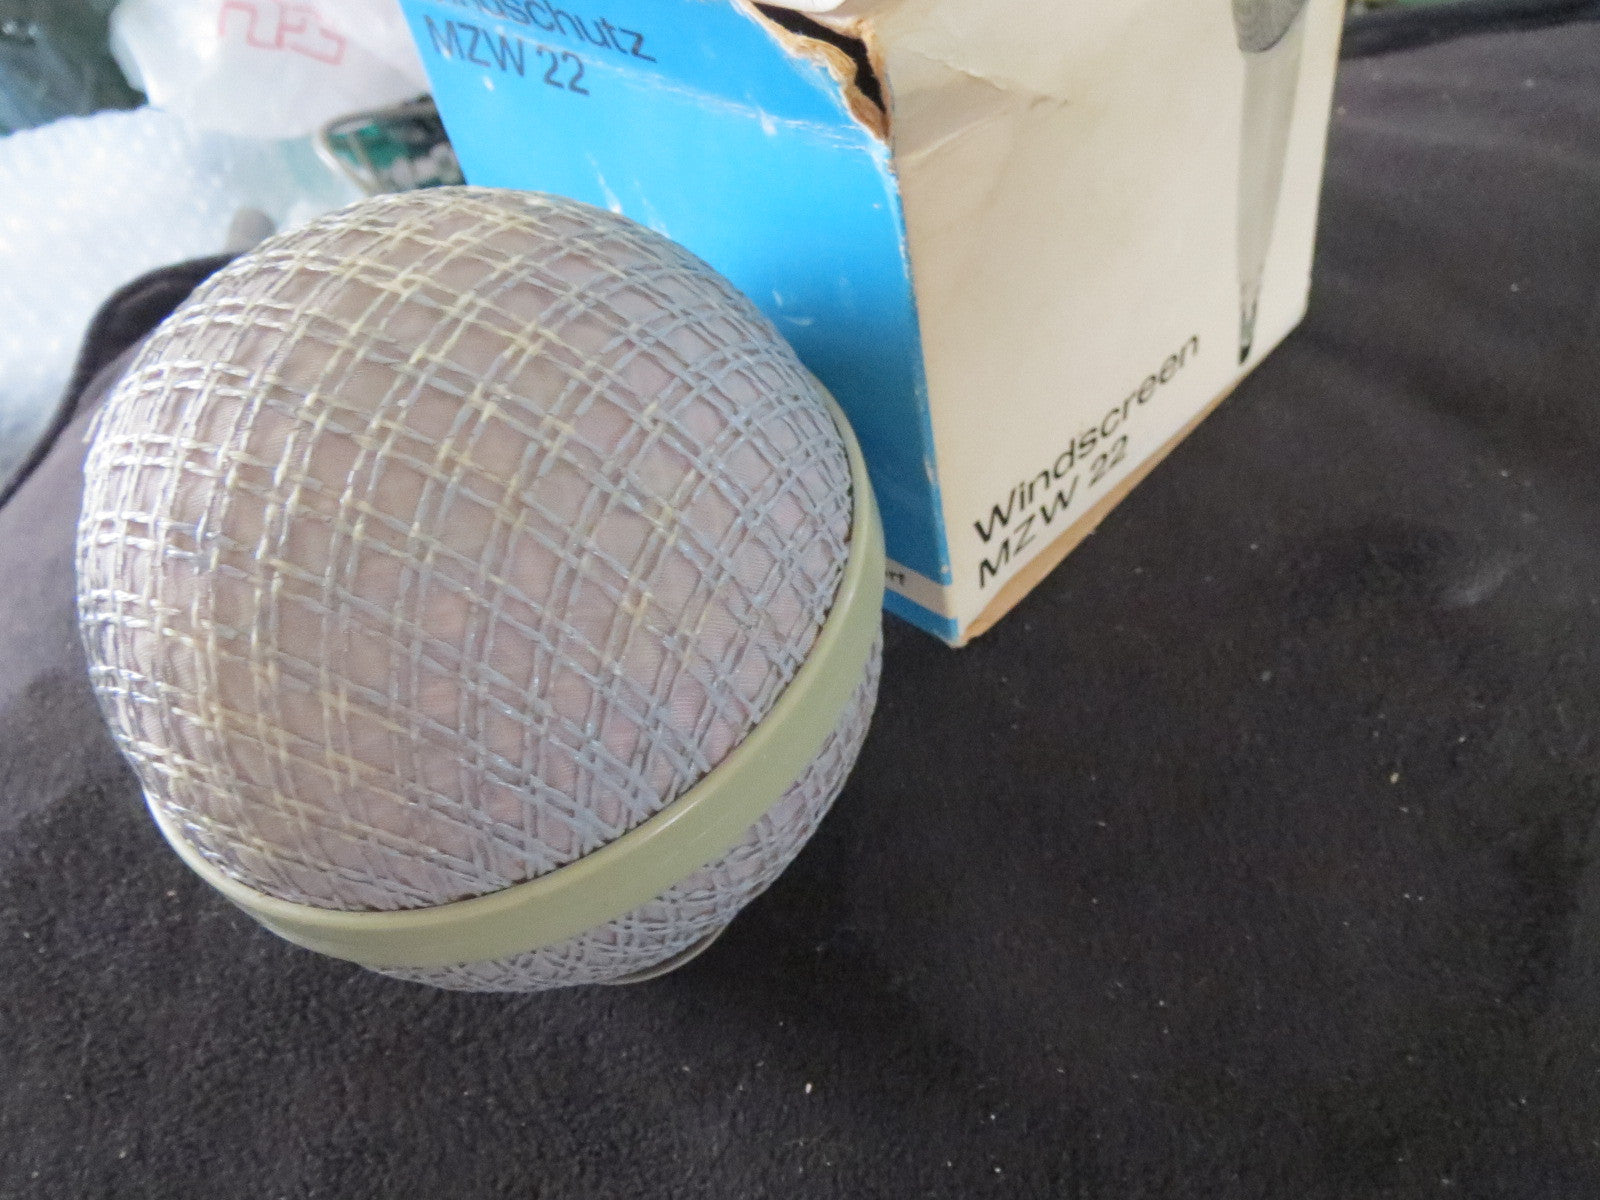 SENNHEISER MZW22 WINDSCREEN SPECIALLY MADE TO FIT MD421 AND MD21 MICROPHONES